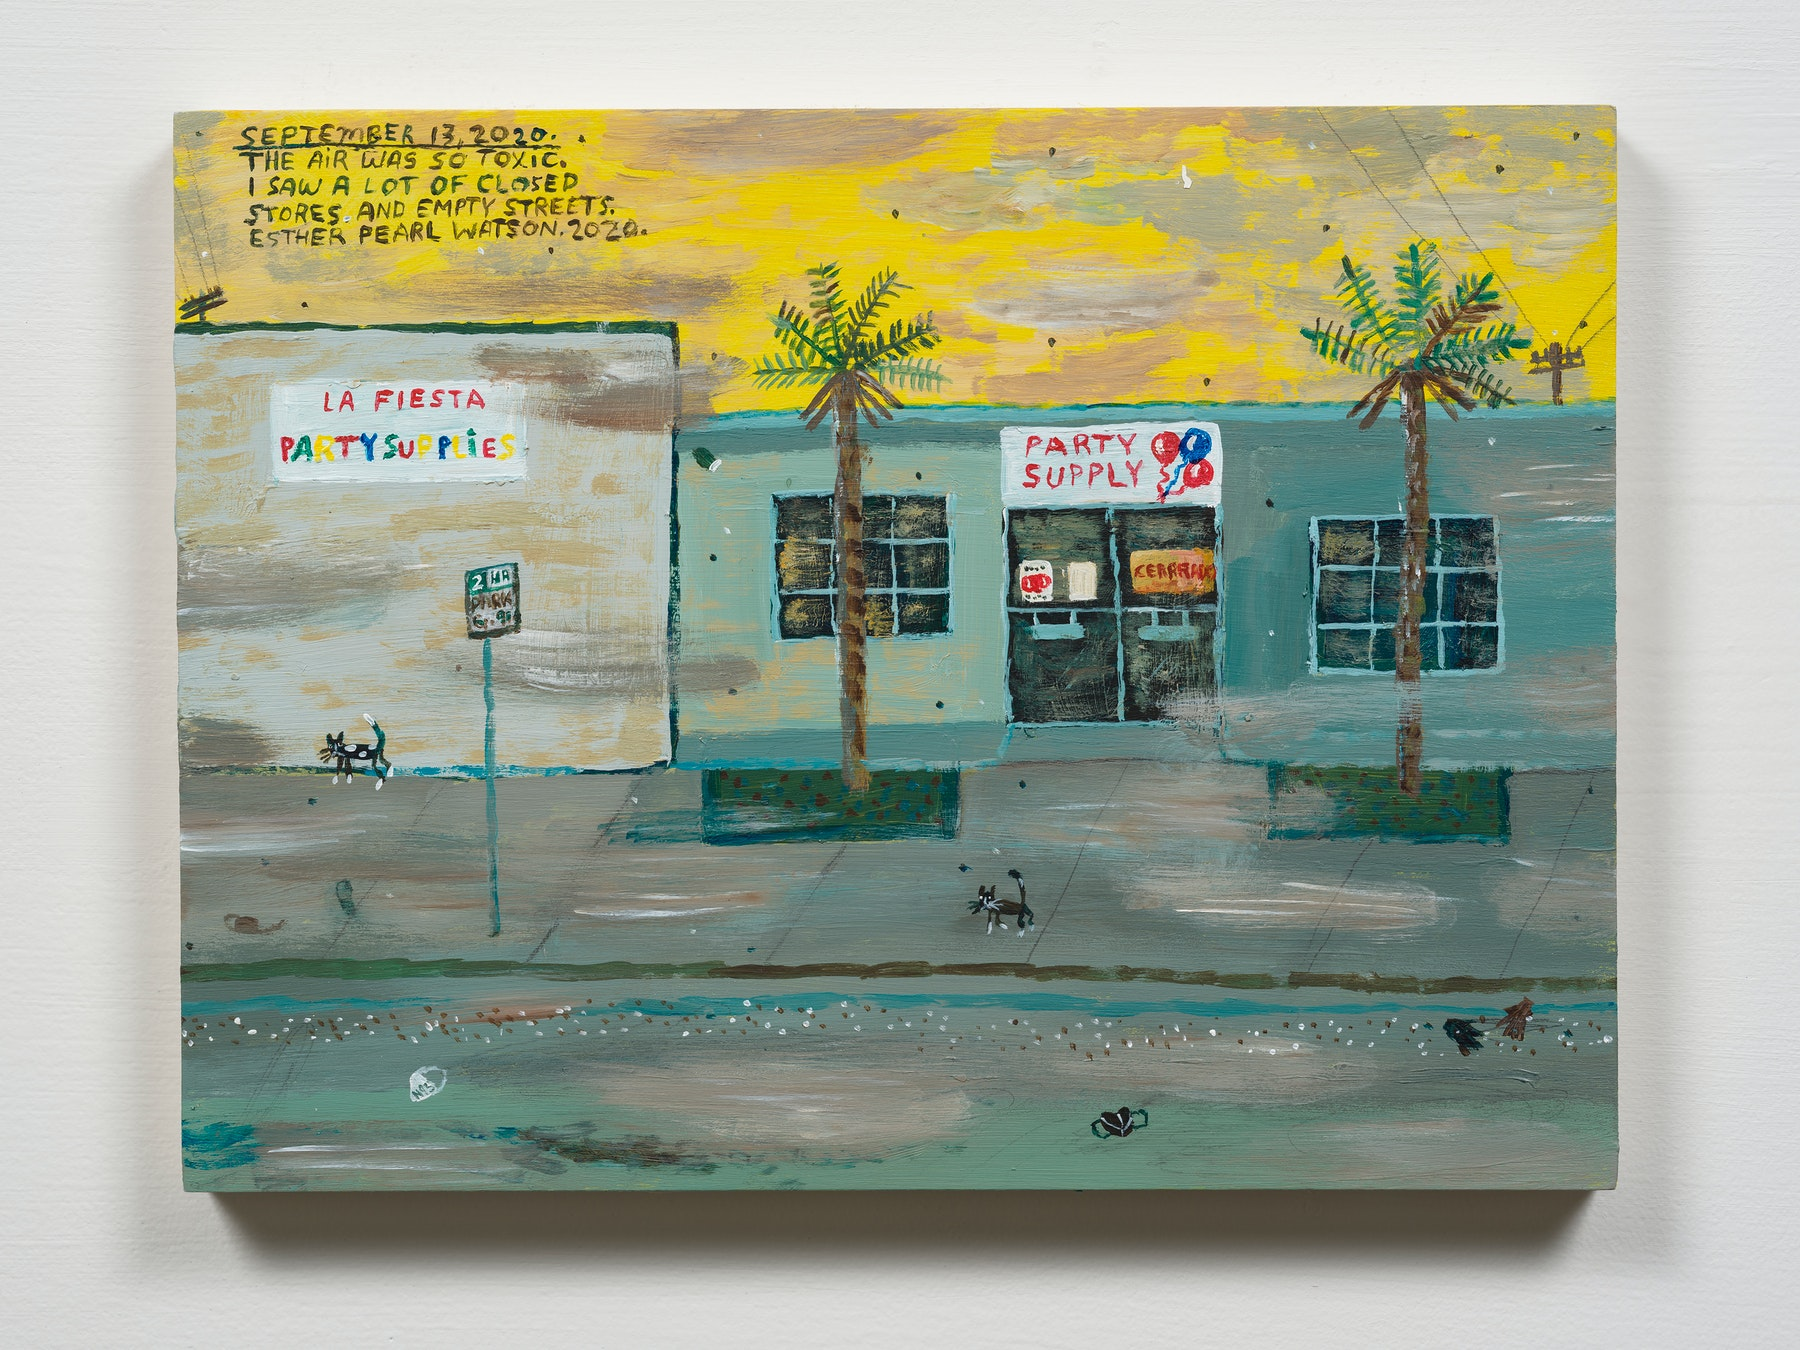 """Esther Pearl Watson """"September 13, The Air Was So Toxic,"""" 2020 Acrylic with pencil on panel 9 x 12"""" [HxW] (22.86 x 30.48 cm) Inventory #EPW337 Courtesy of the artist and Vielmetter Los Angeles Photo credit: Jeff Mclane"""